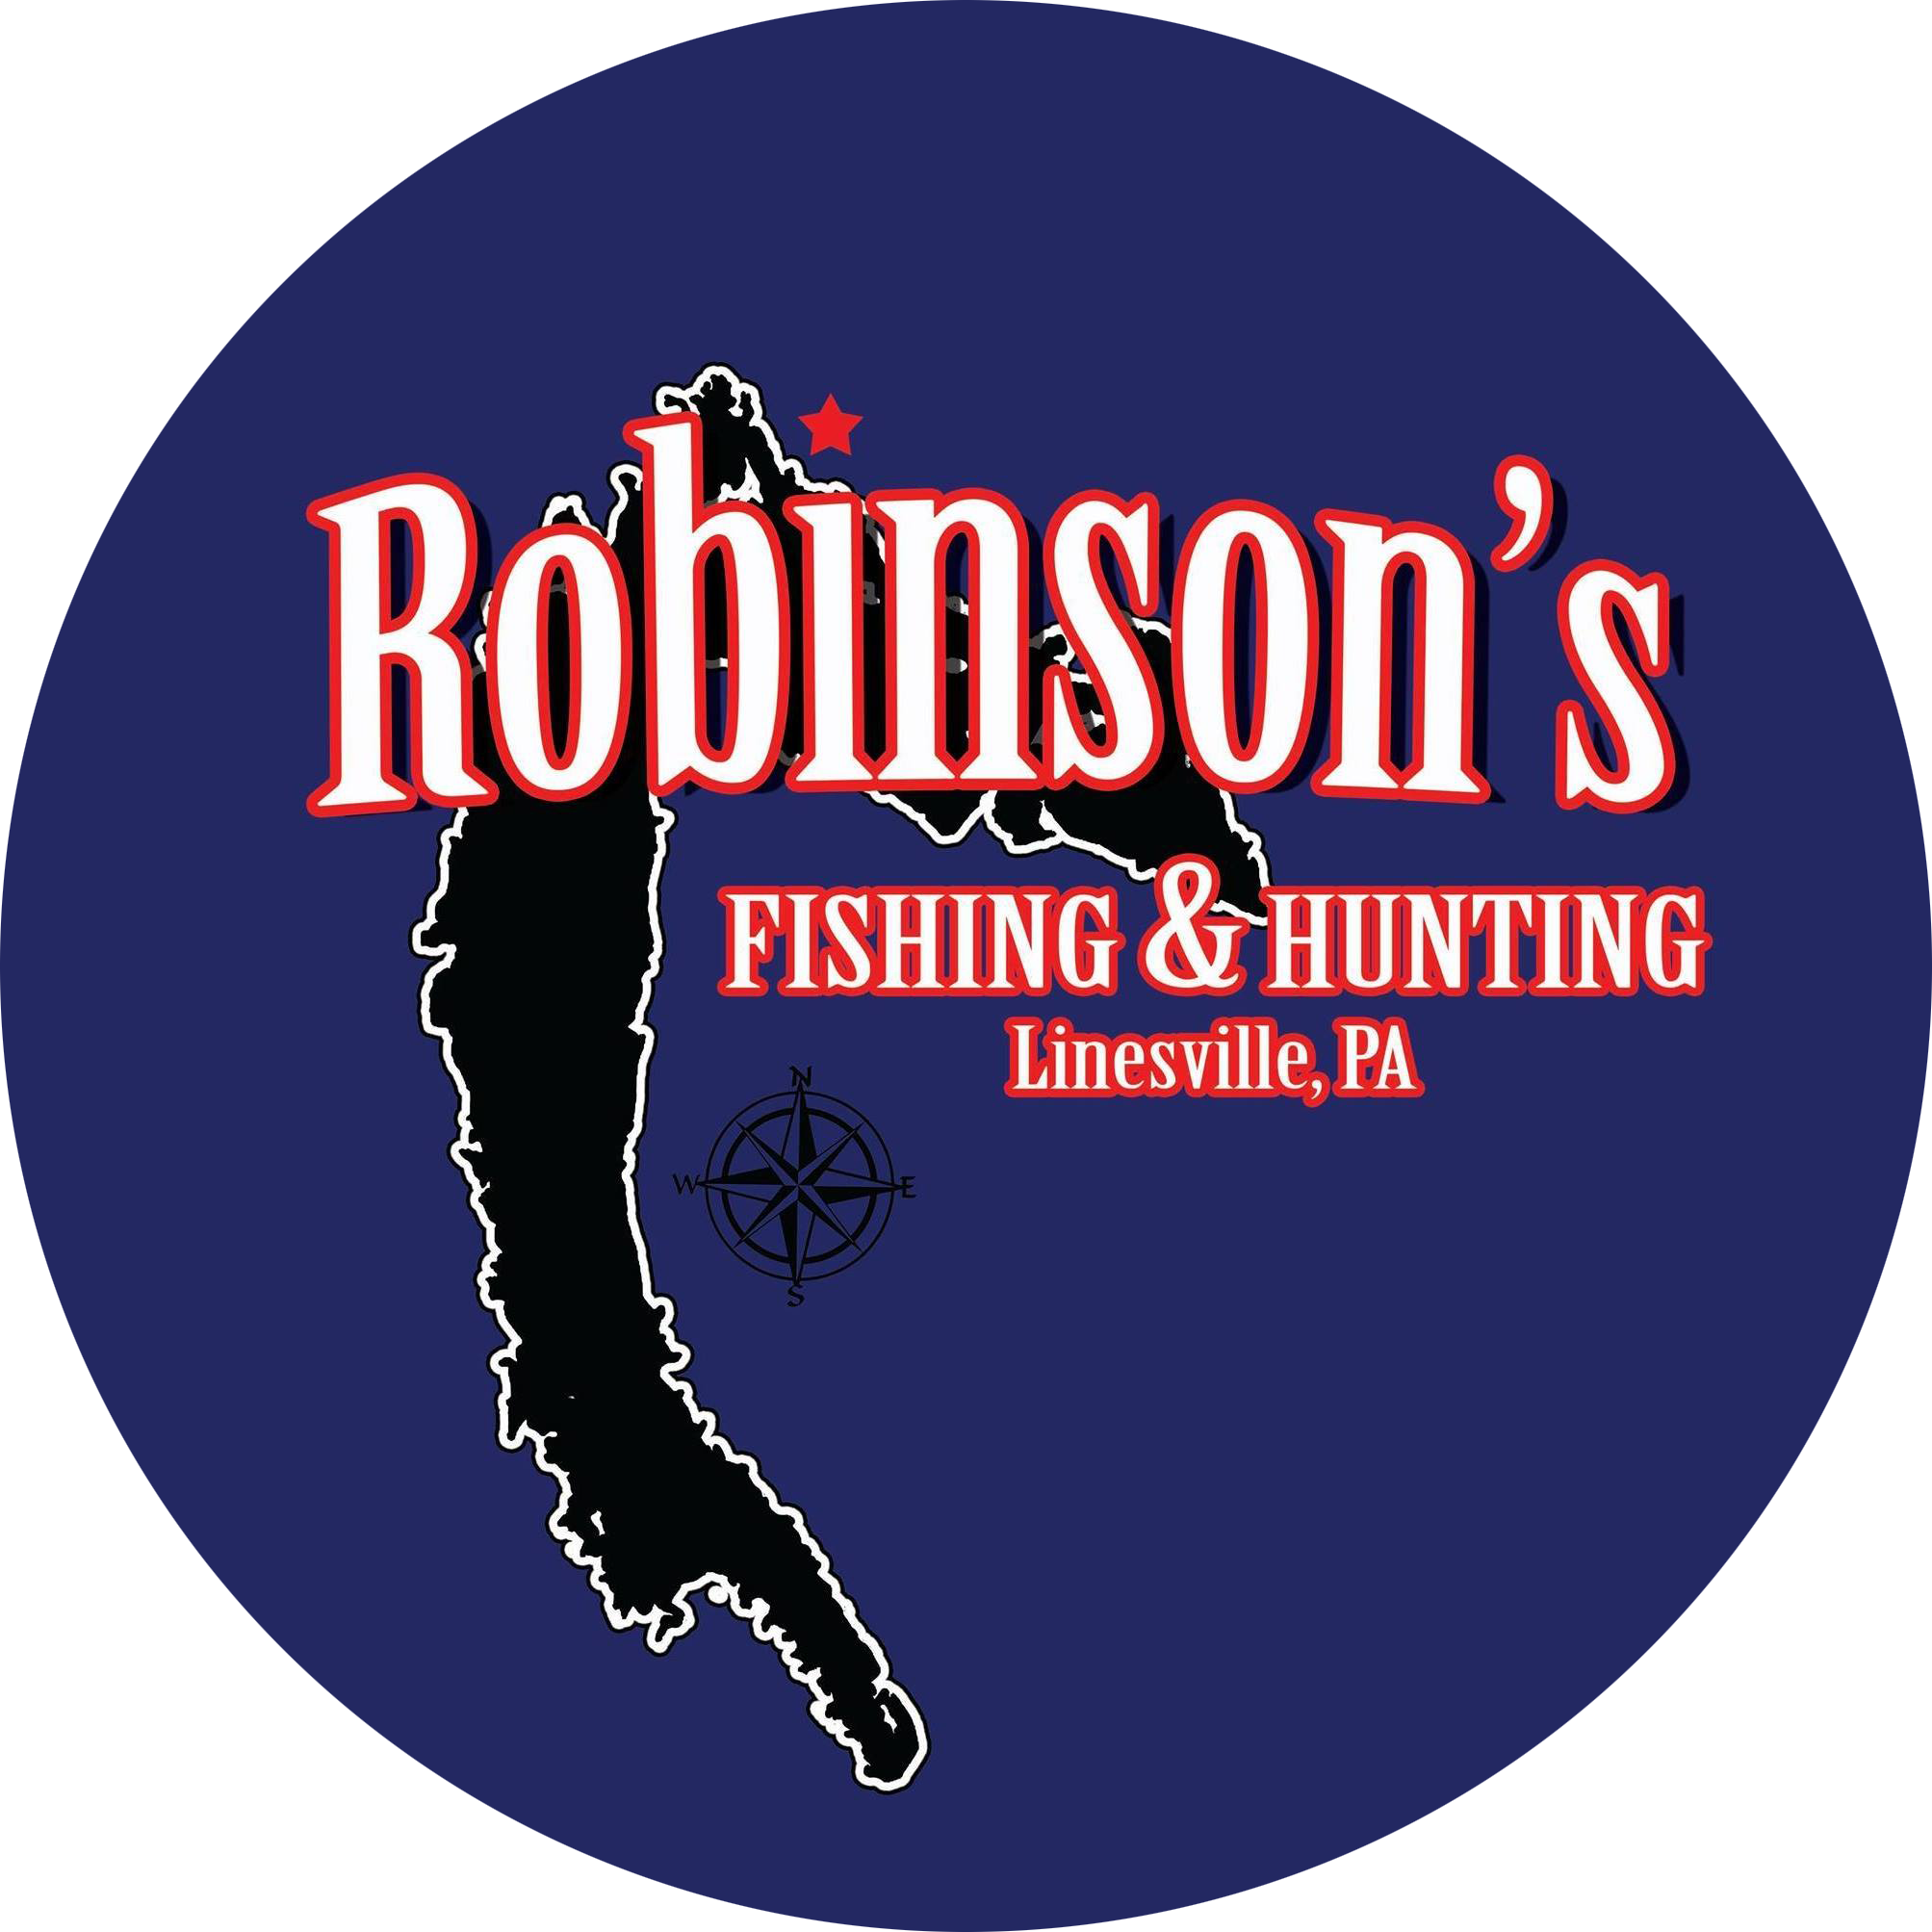 Robinson's Fishing and Hunting